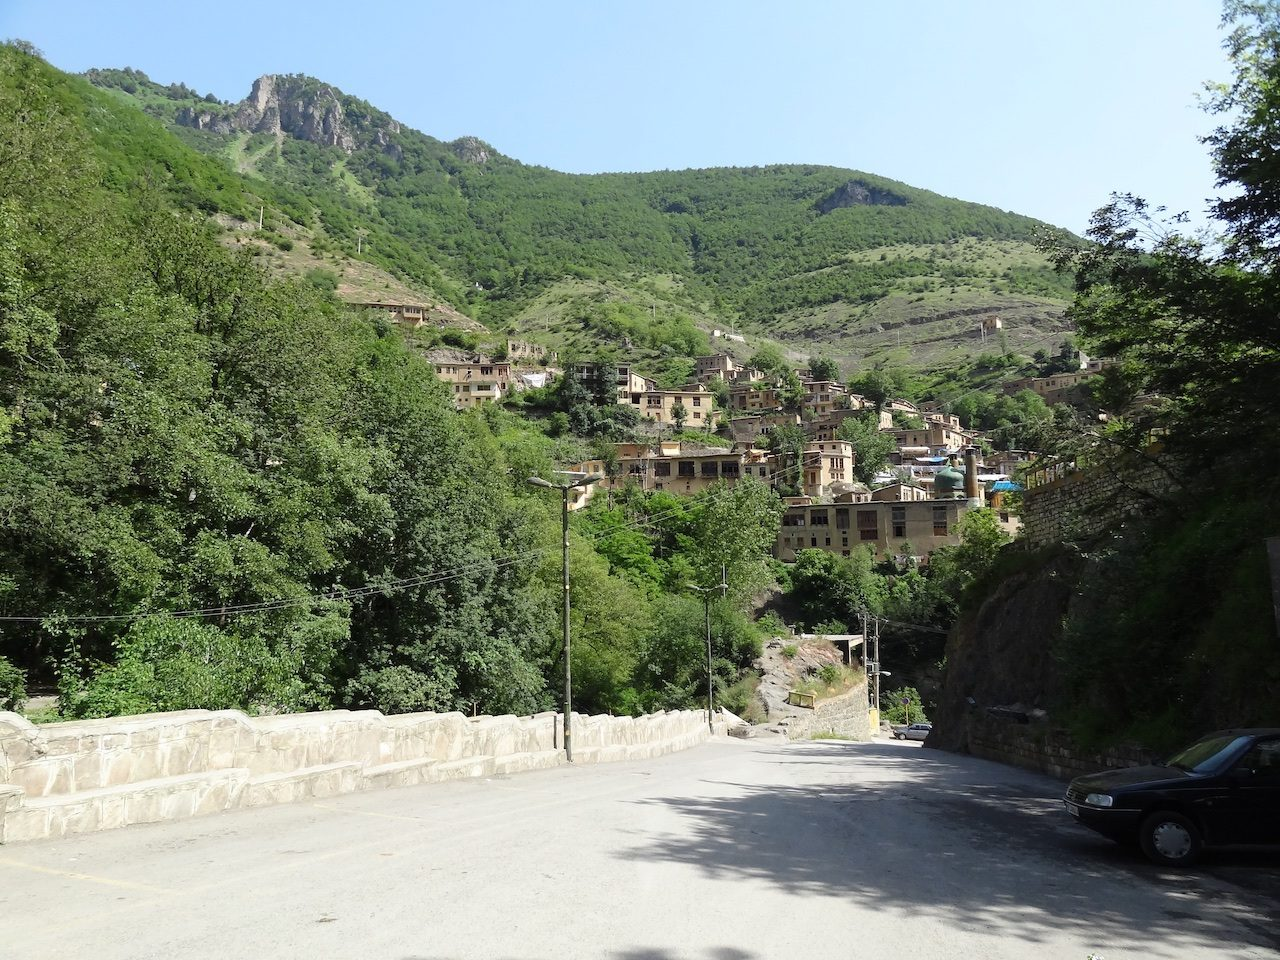 First glimpse of Masuleh